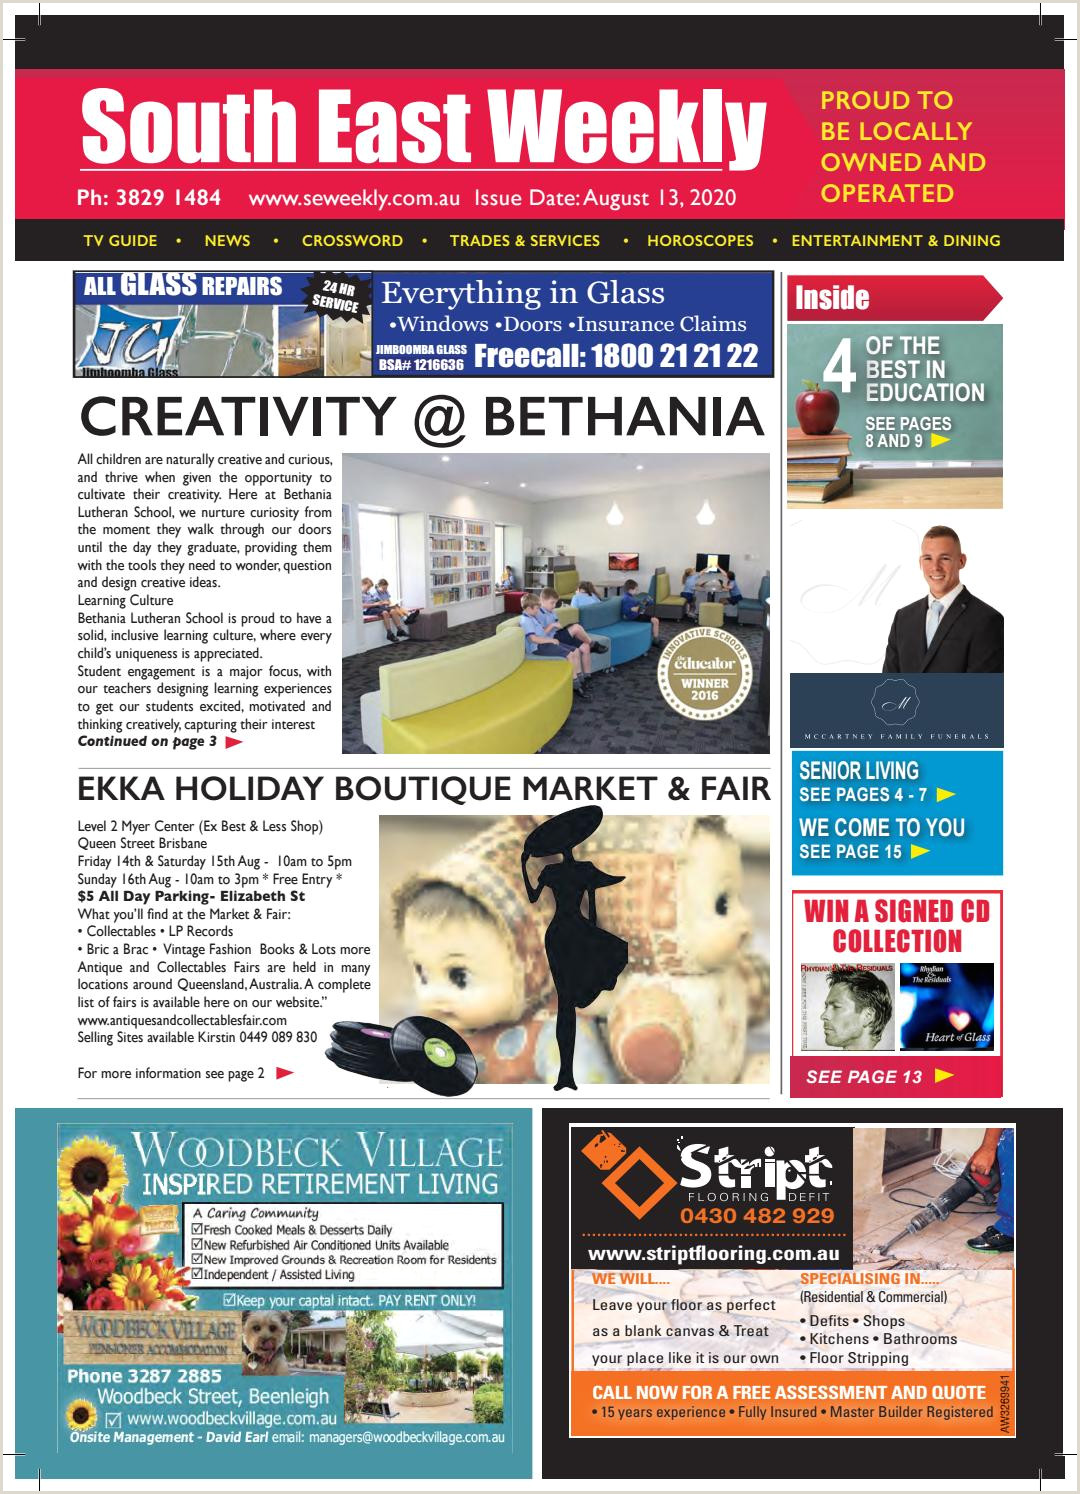 Bthe Best Business Cards South East Weekly August 13 2020 By South East Weekly